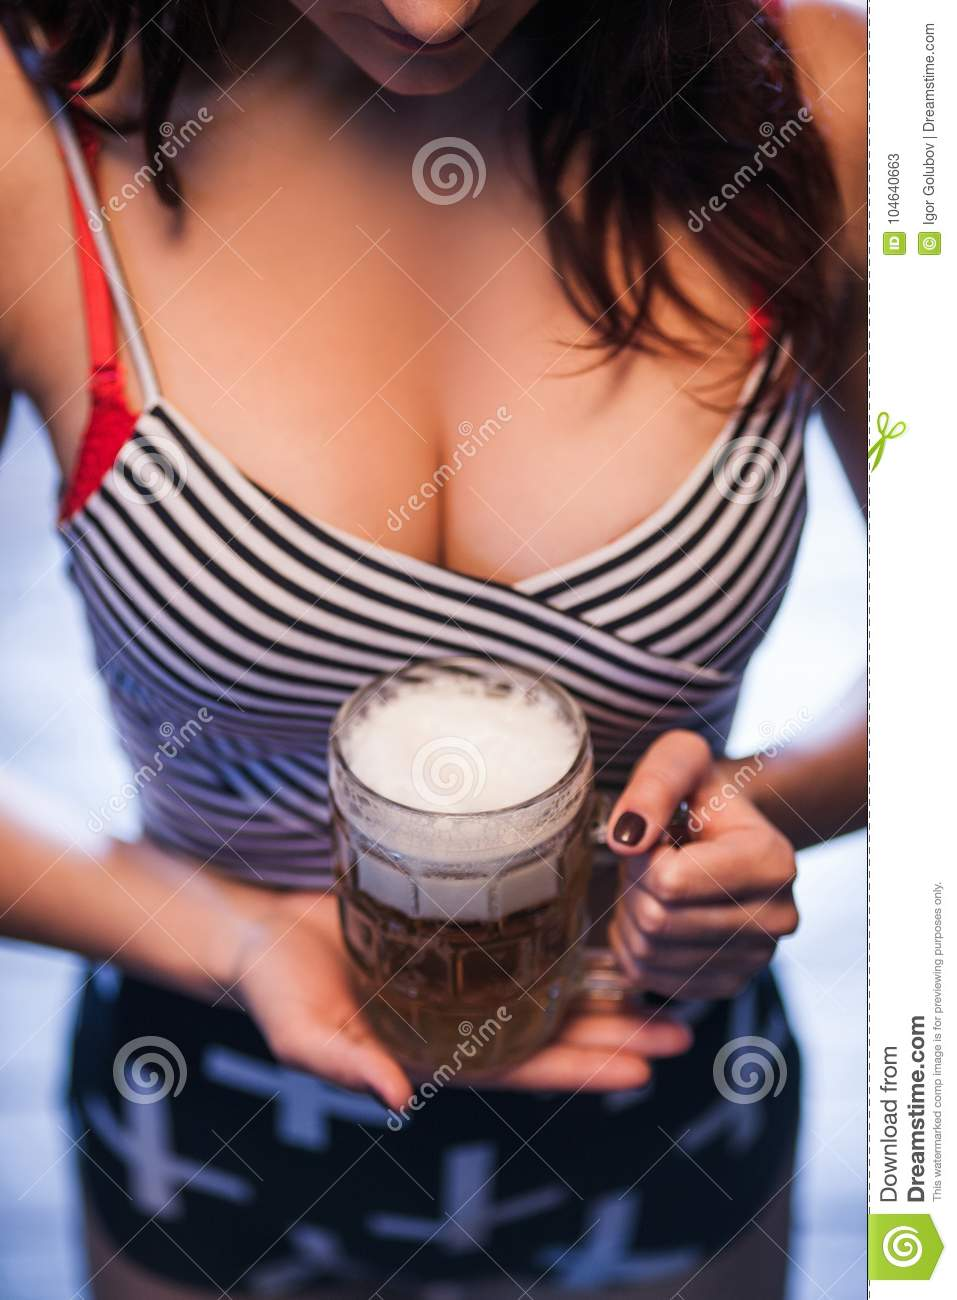 Good Times, Beer And Girls With Big Breasts